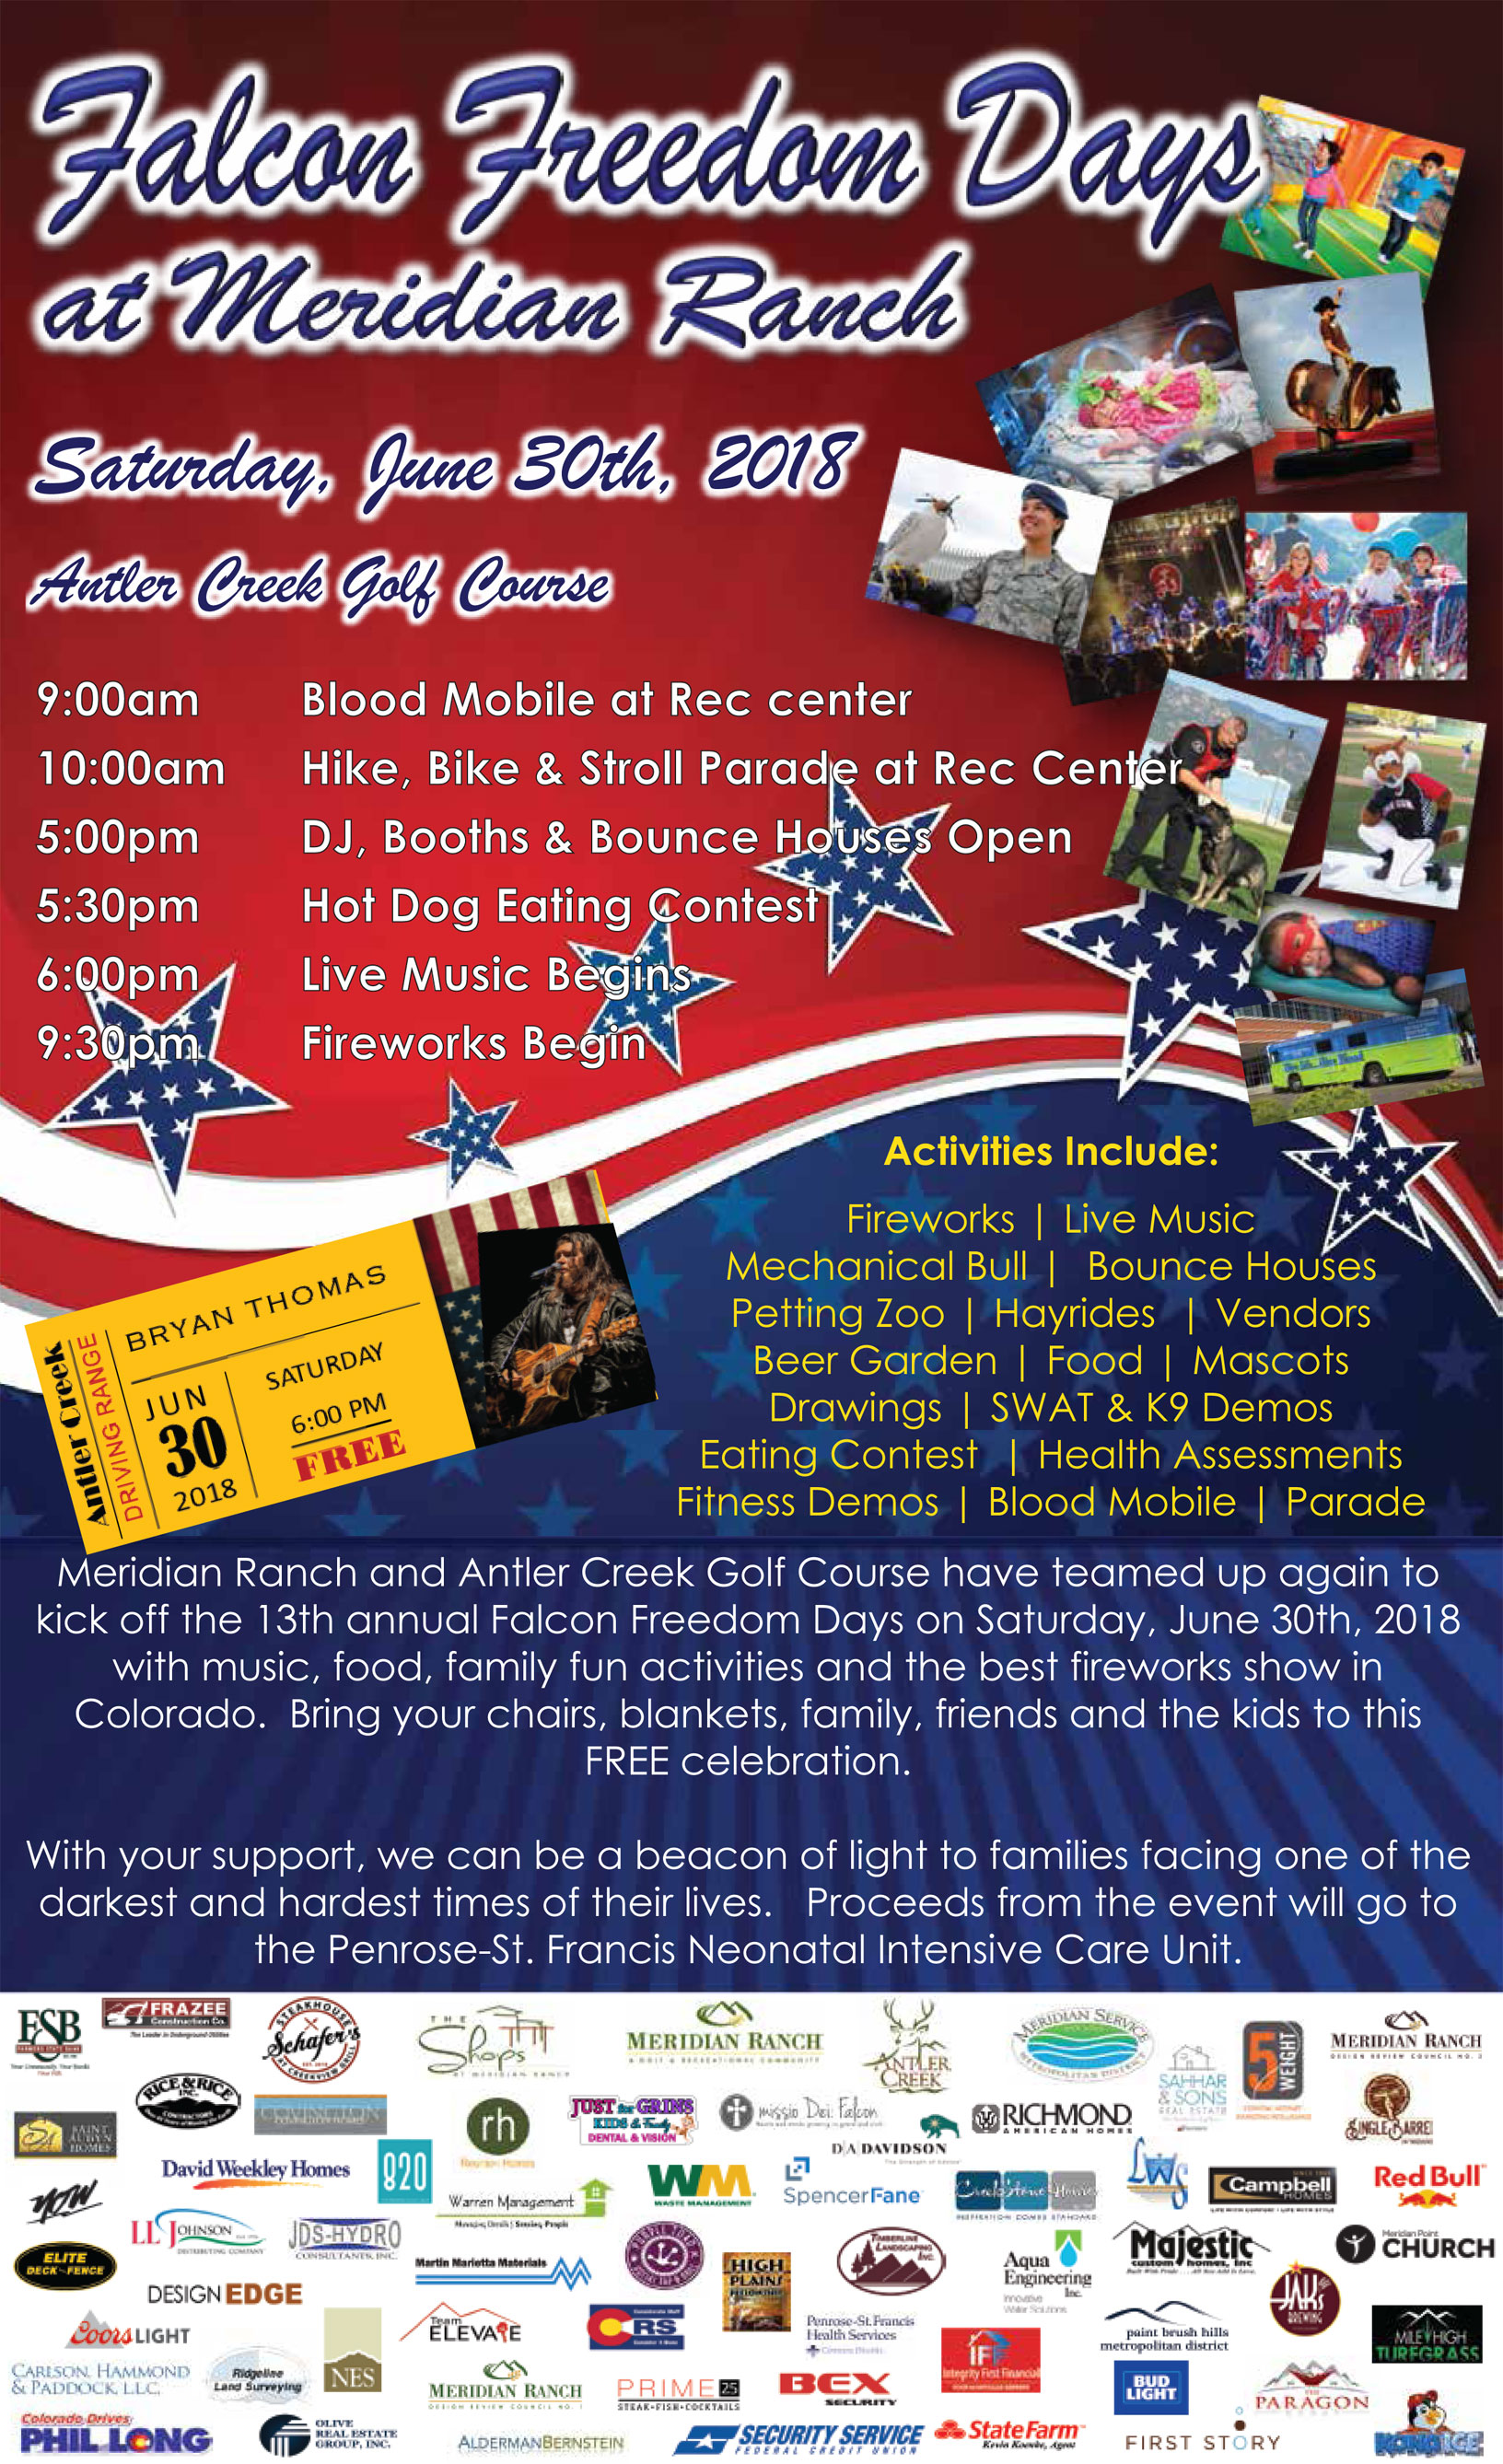 Falcon Freedom Days Flyer